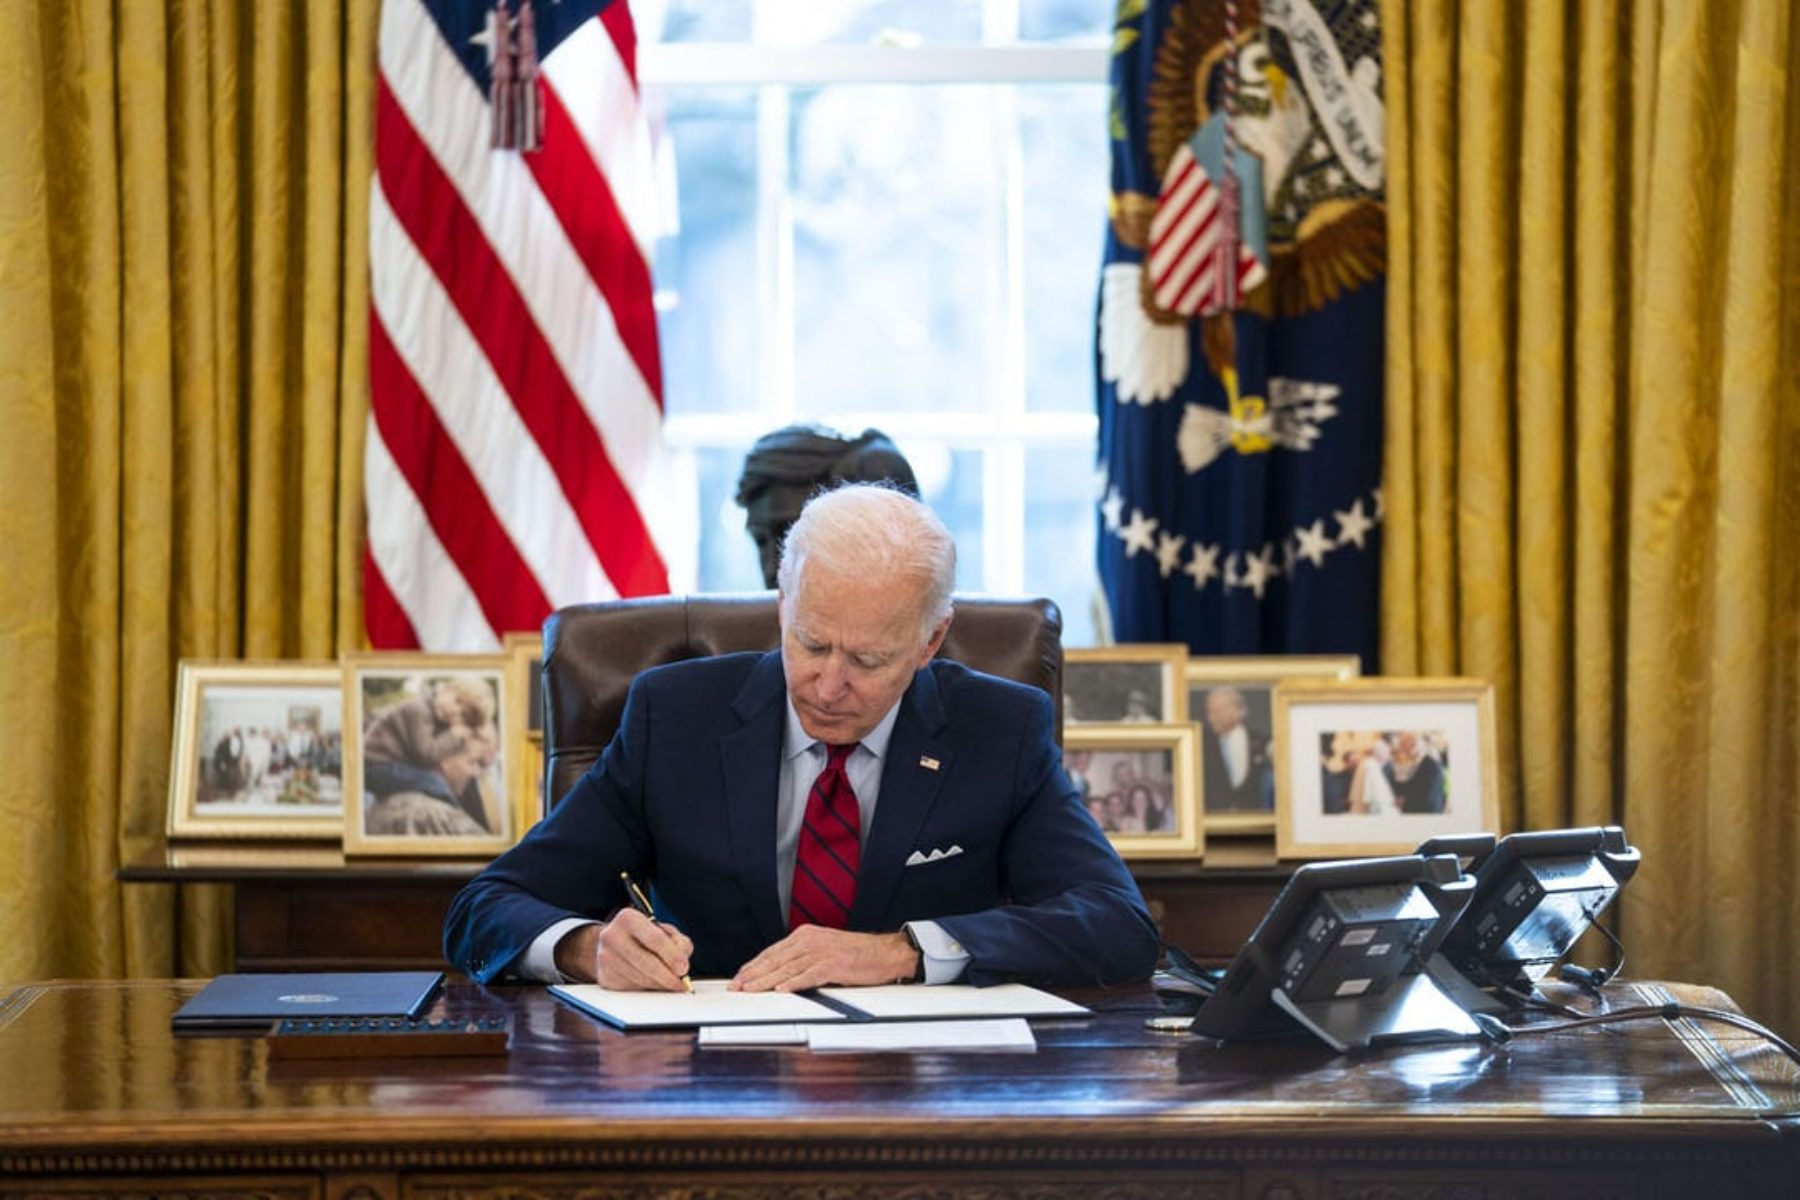 U.S. President Joe Biden signs a series of executive actions at his desk.